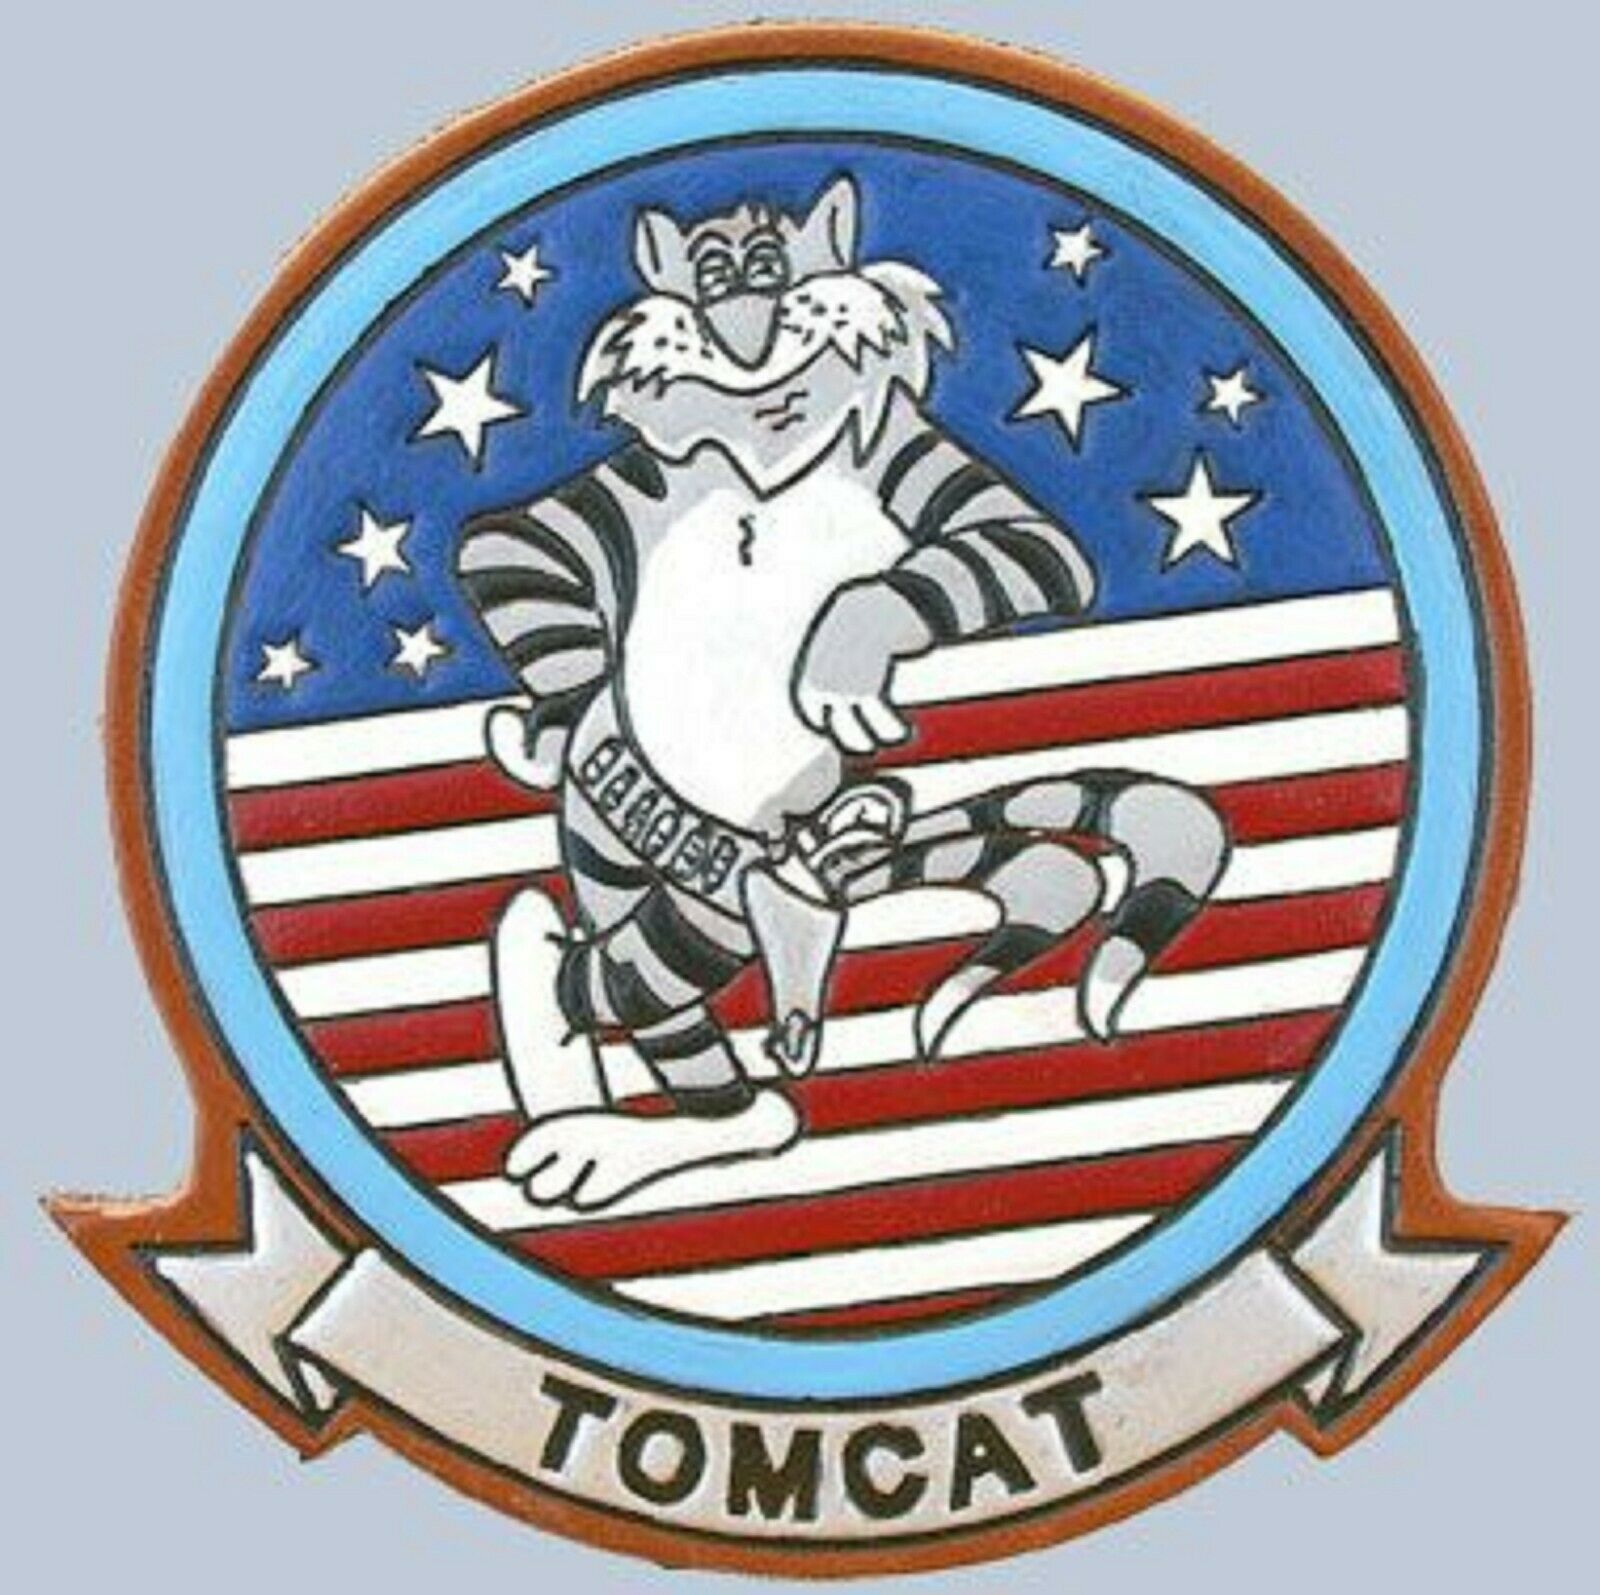 Primary image for US Navy Tomcat  F-14 Military Patch Sticker